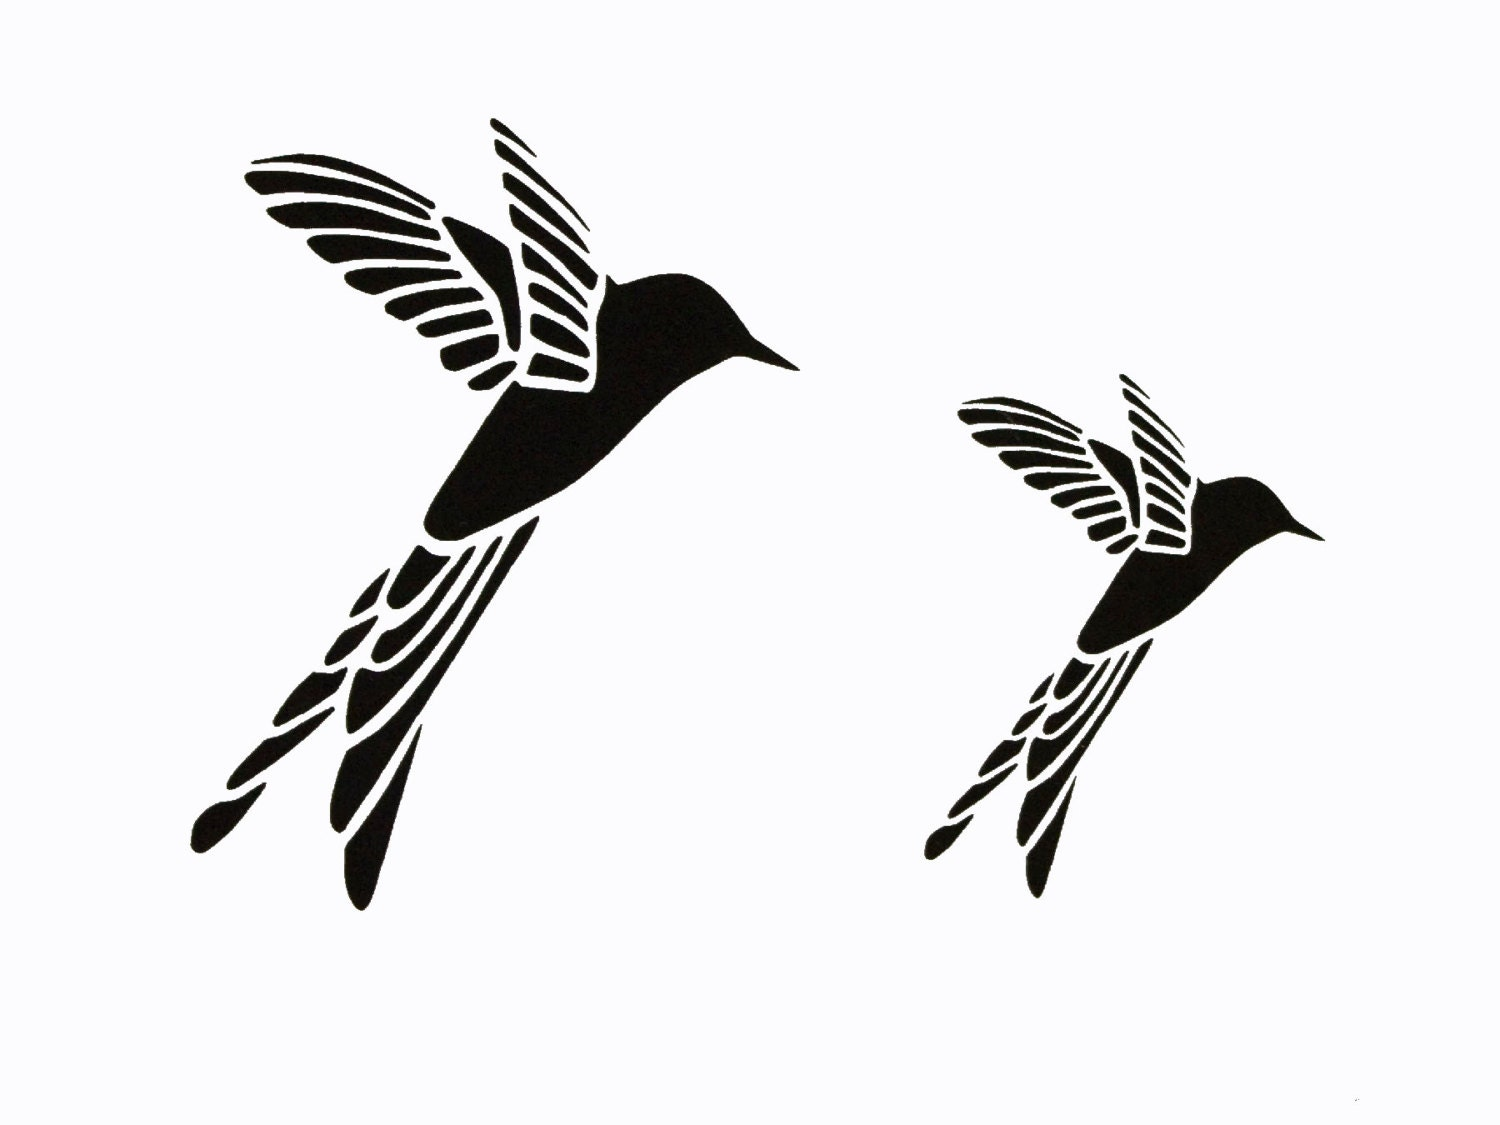 Bird stencil for wall choice image home wall decoration ideas bird stencil for wall gallery home wall decoration ideas bird stencil for wall gallery home wall amipublicfo Images